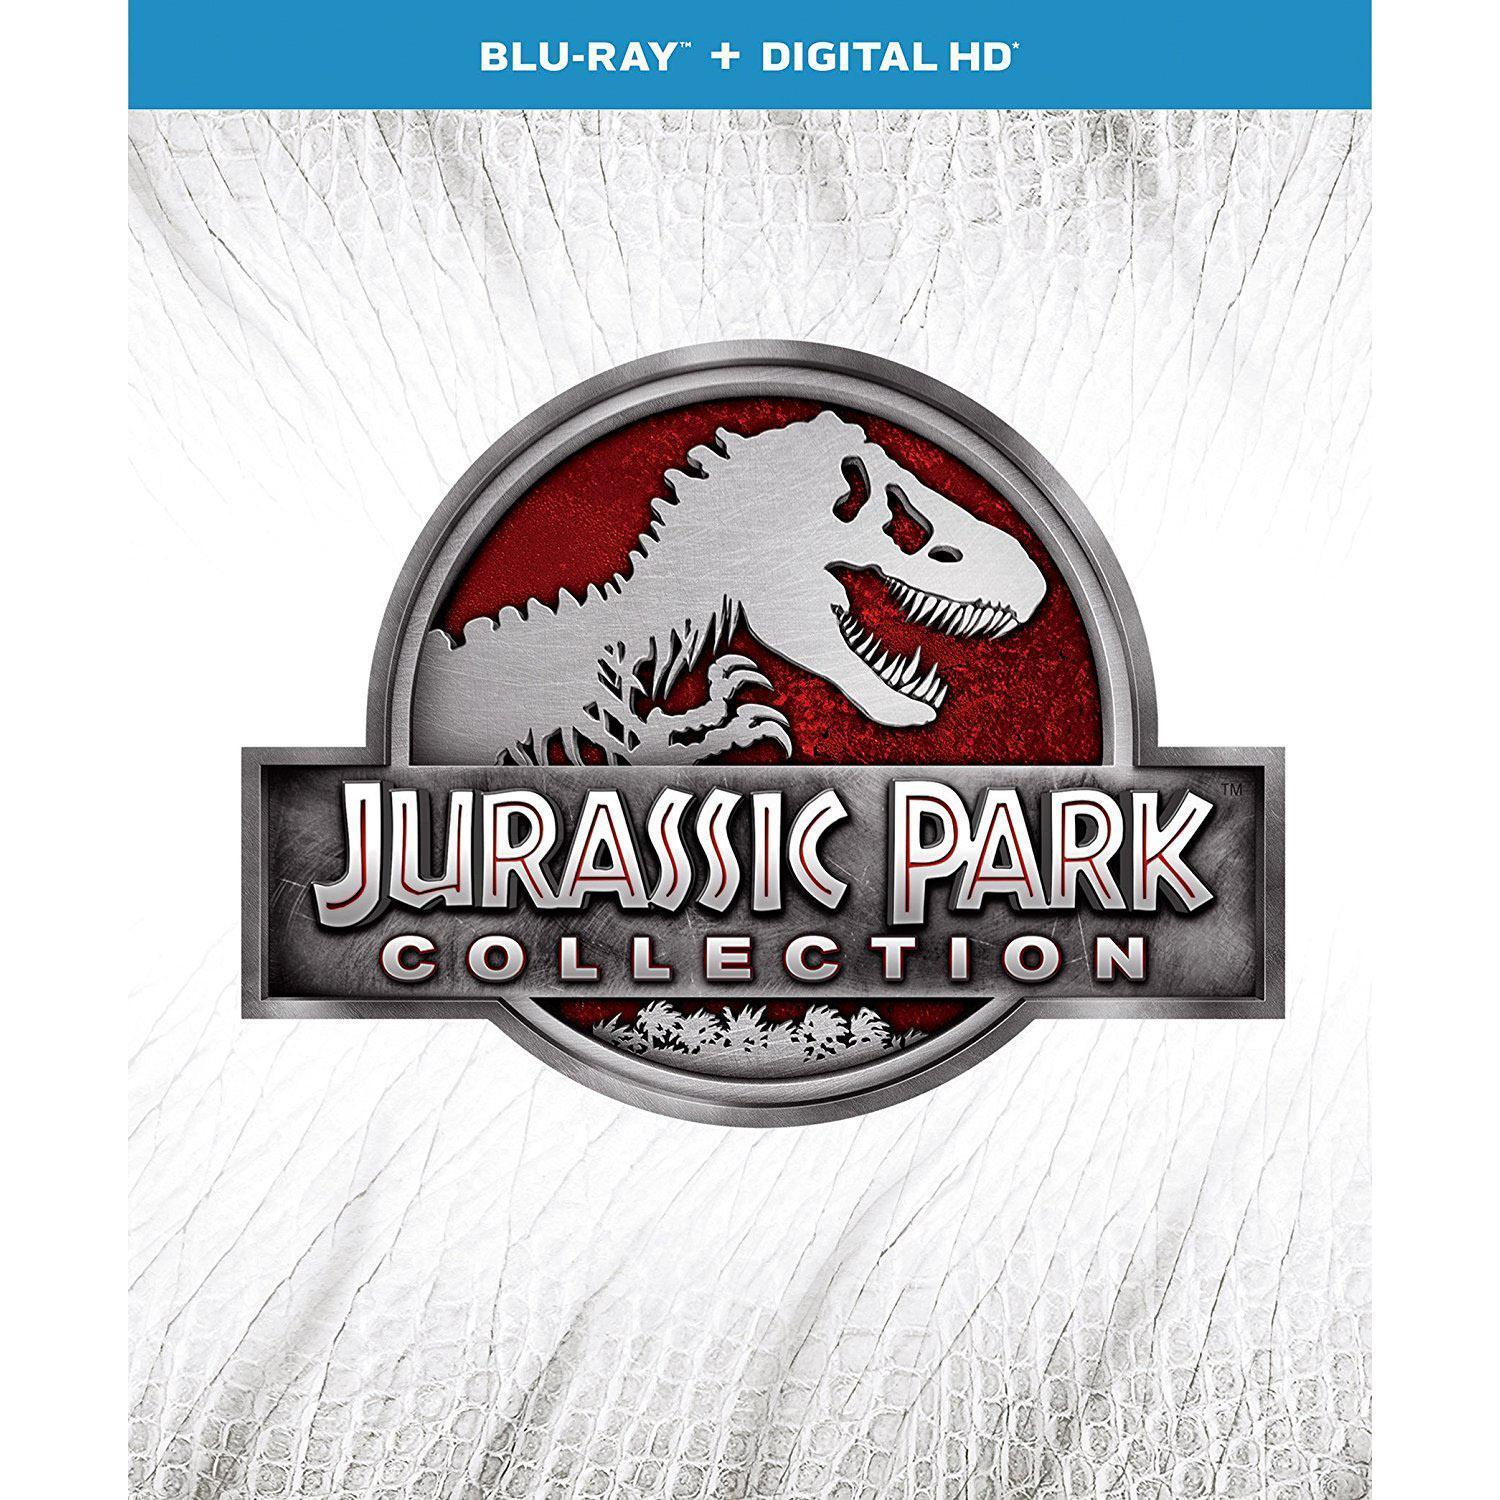 Jurassic Park Collection Blu-ray